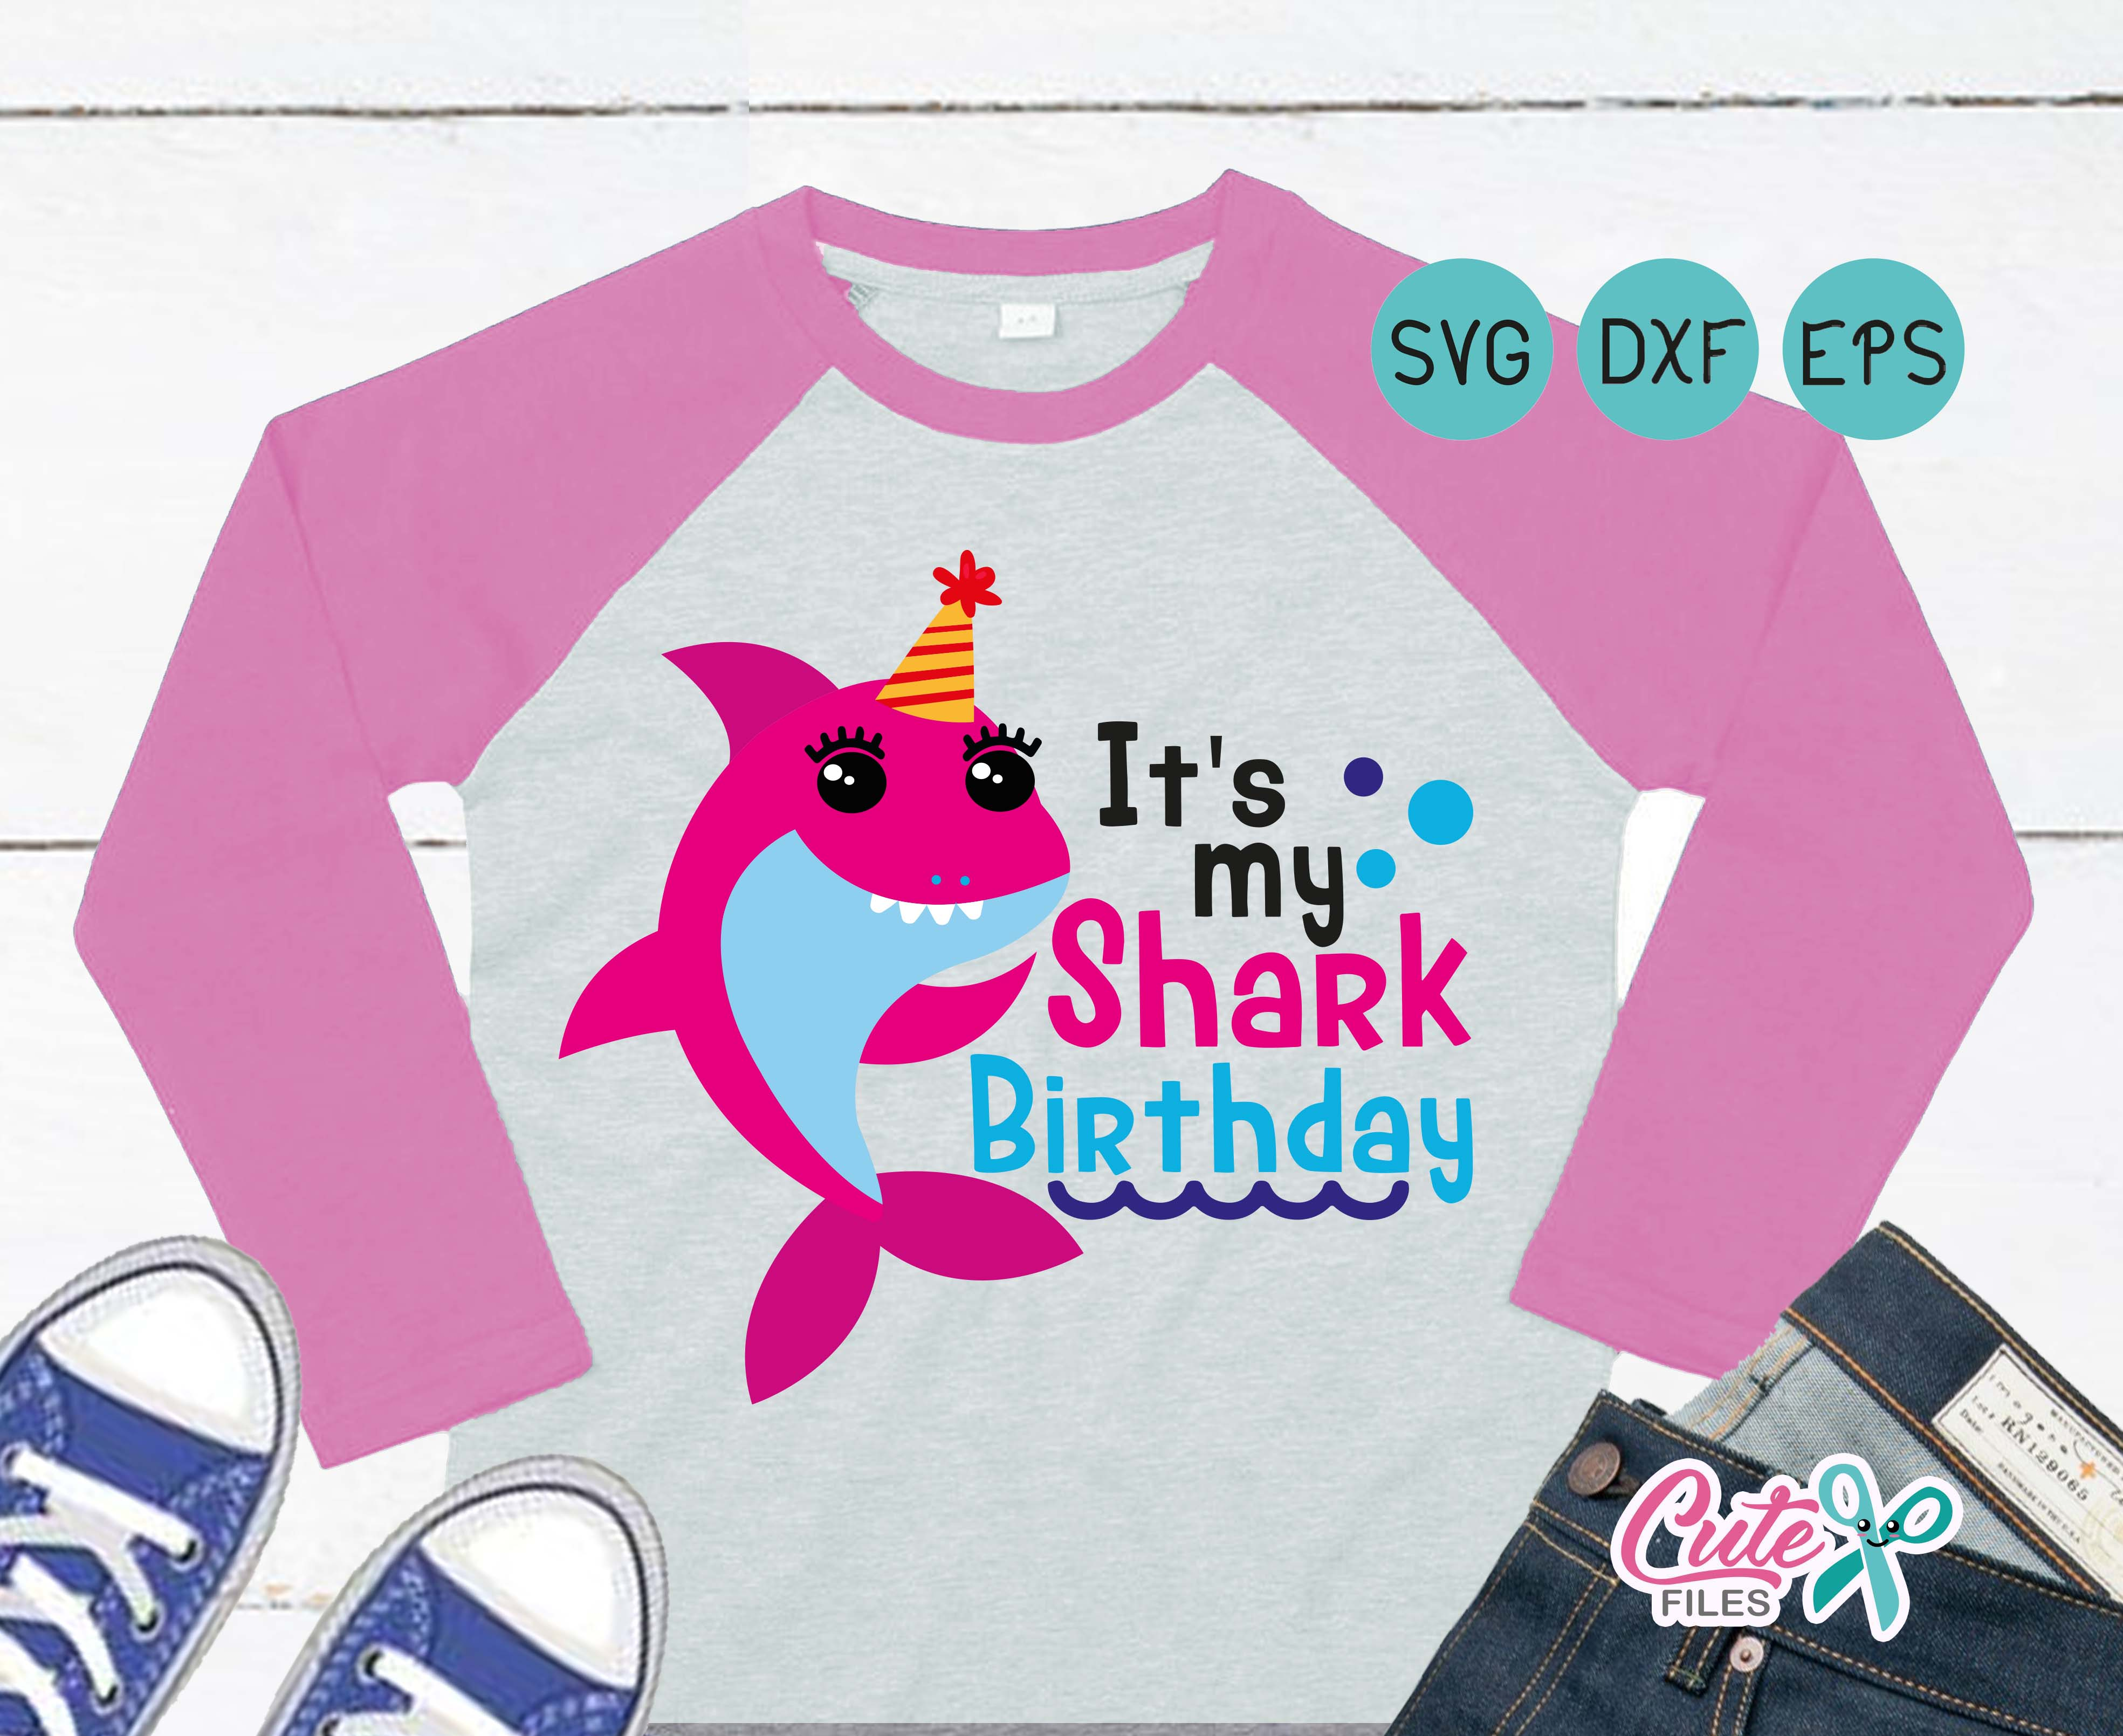 Download Free It S My Shark Birthday Graphic By Cute Files Creative Fabrica for Cricut Explore, Silhouette and other cutting machines.